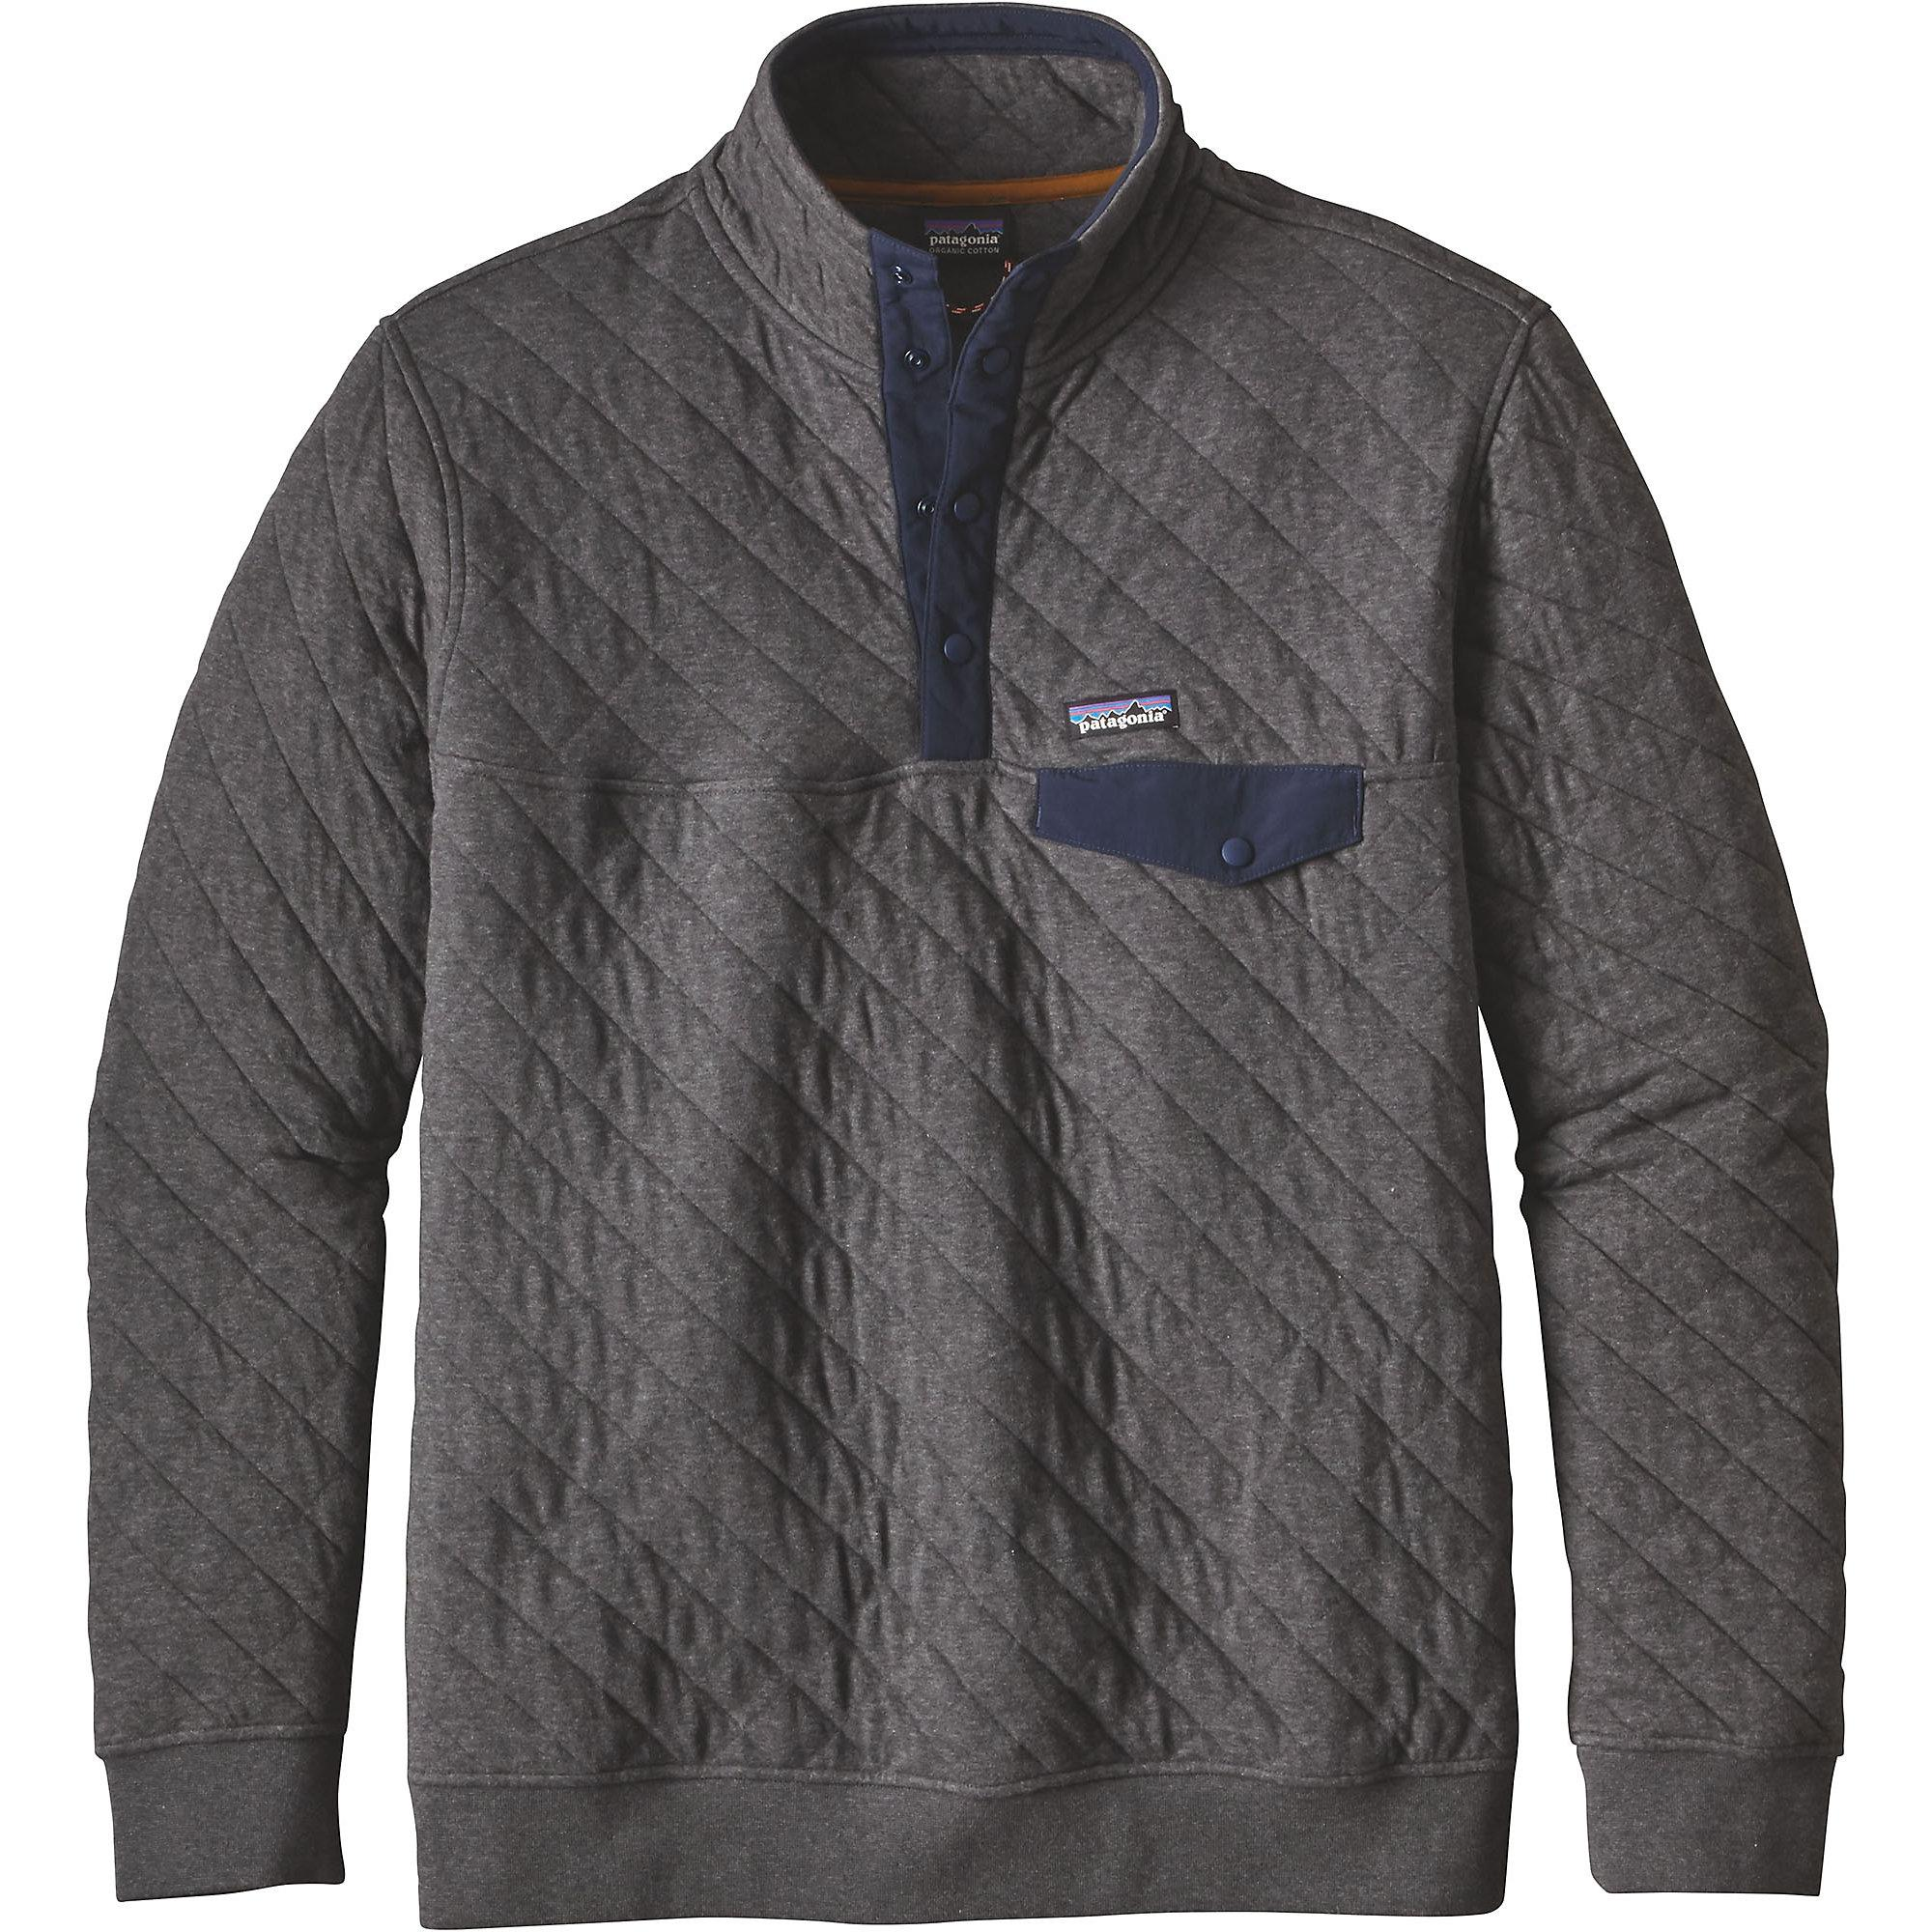 Patagonia Quilted Pullover Nordstrom: Patagonia Cotton Quilt Snap-t Pullover In Gray For Men